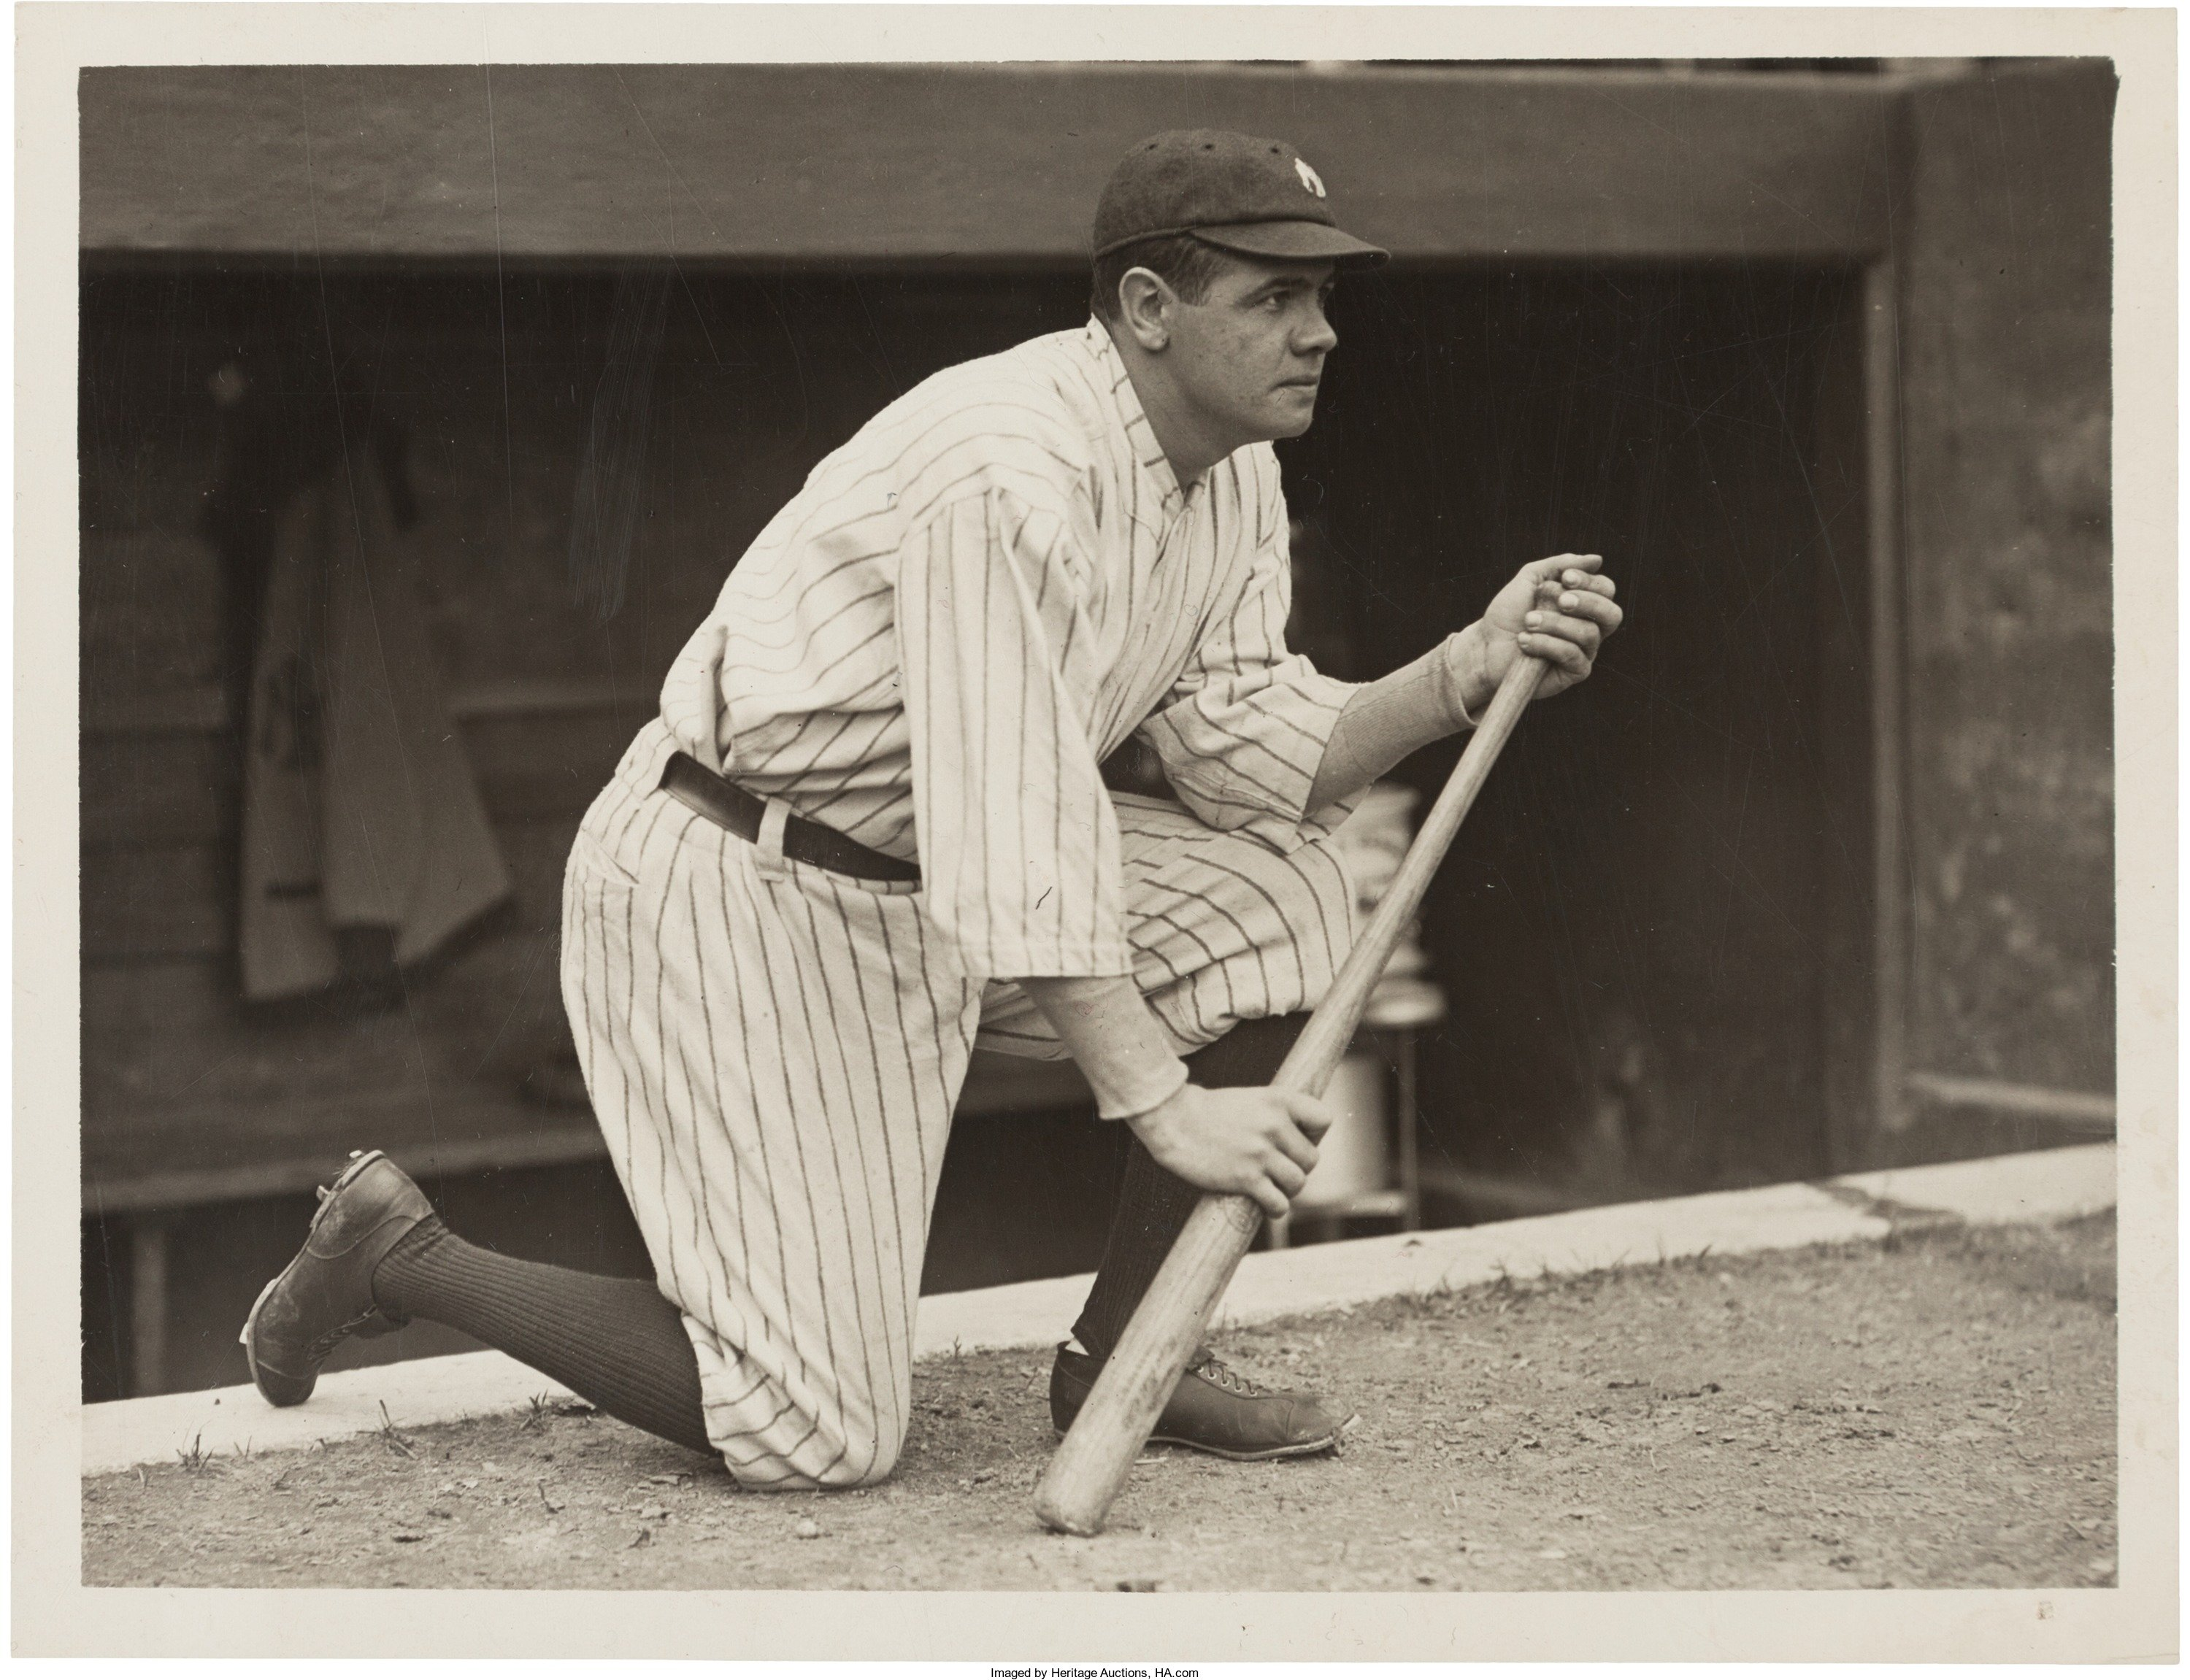 Babe_Ruth_by_Paul_Thompson,_c1920